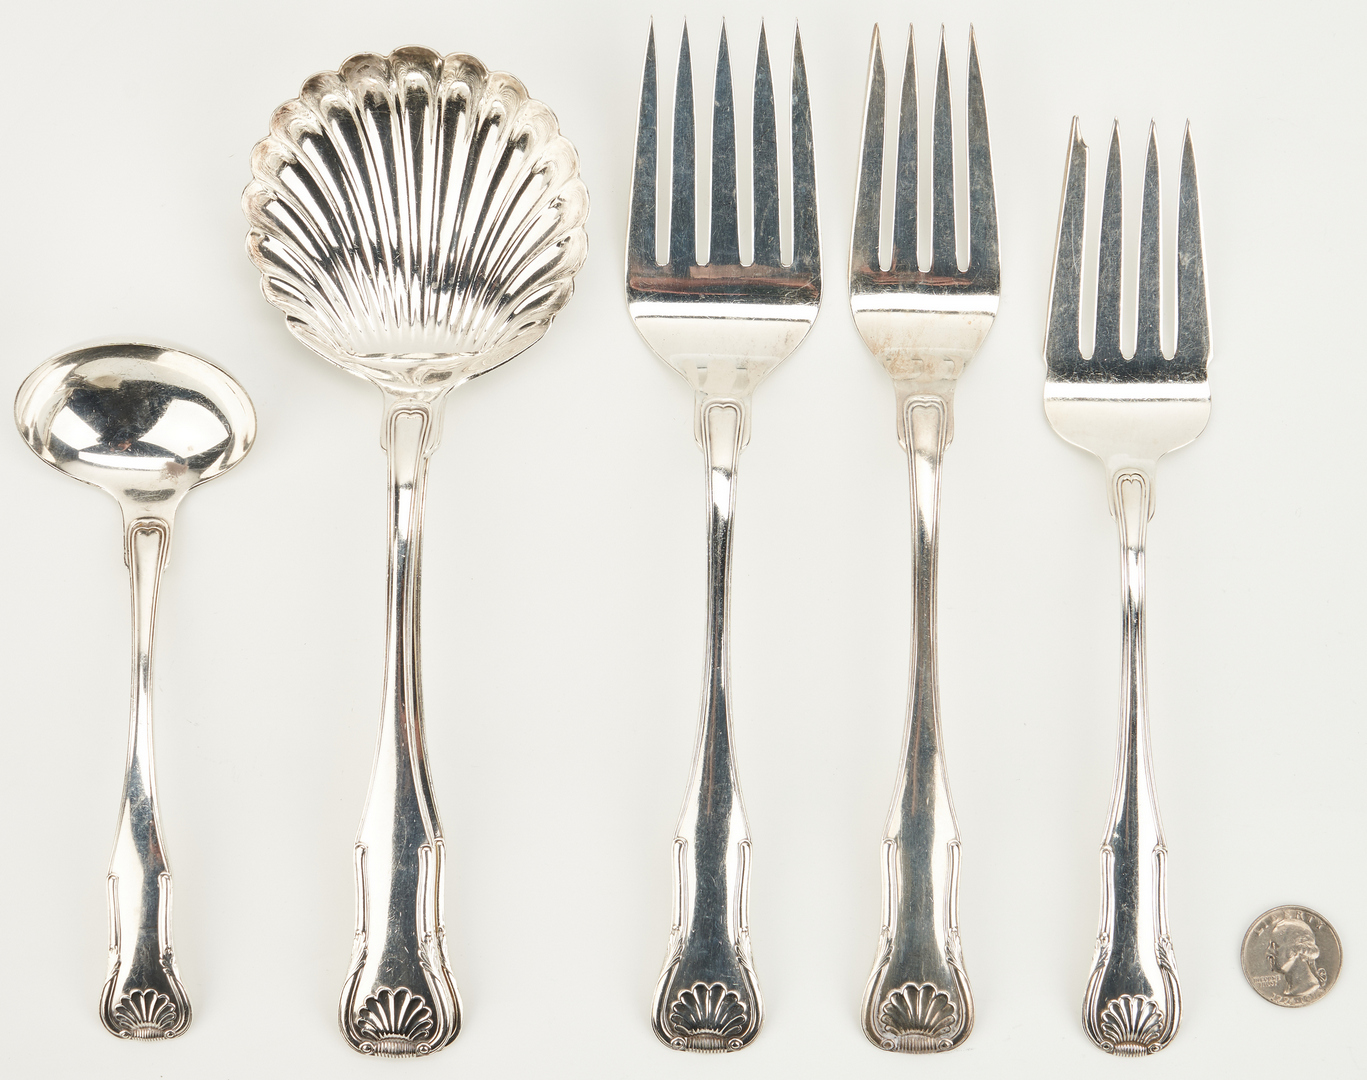 Lot 942: 6 pcs Kirk Sterling Serving Forks and Ladles